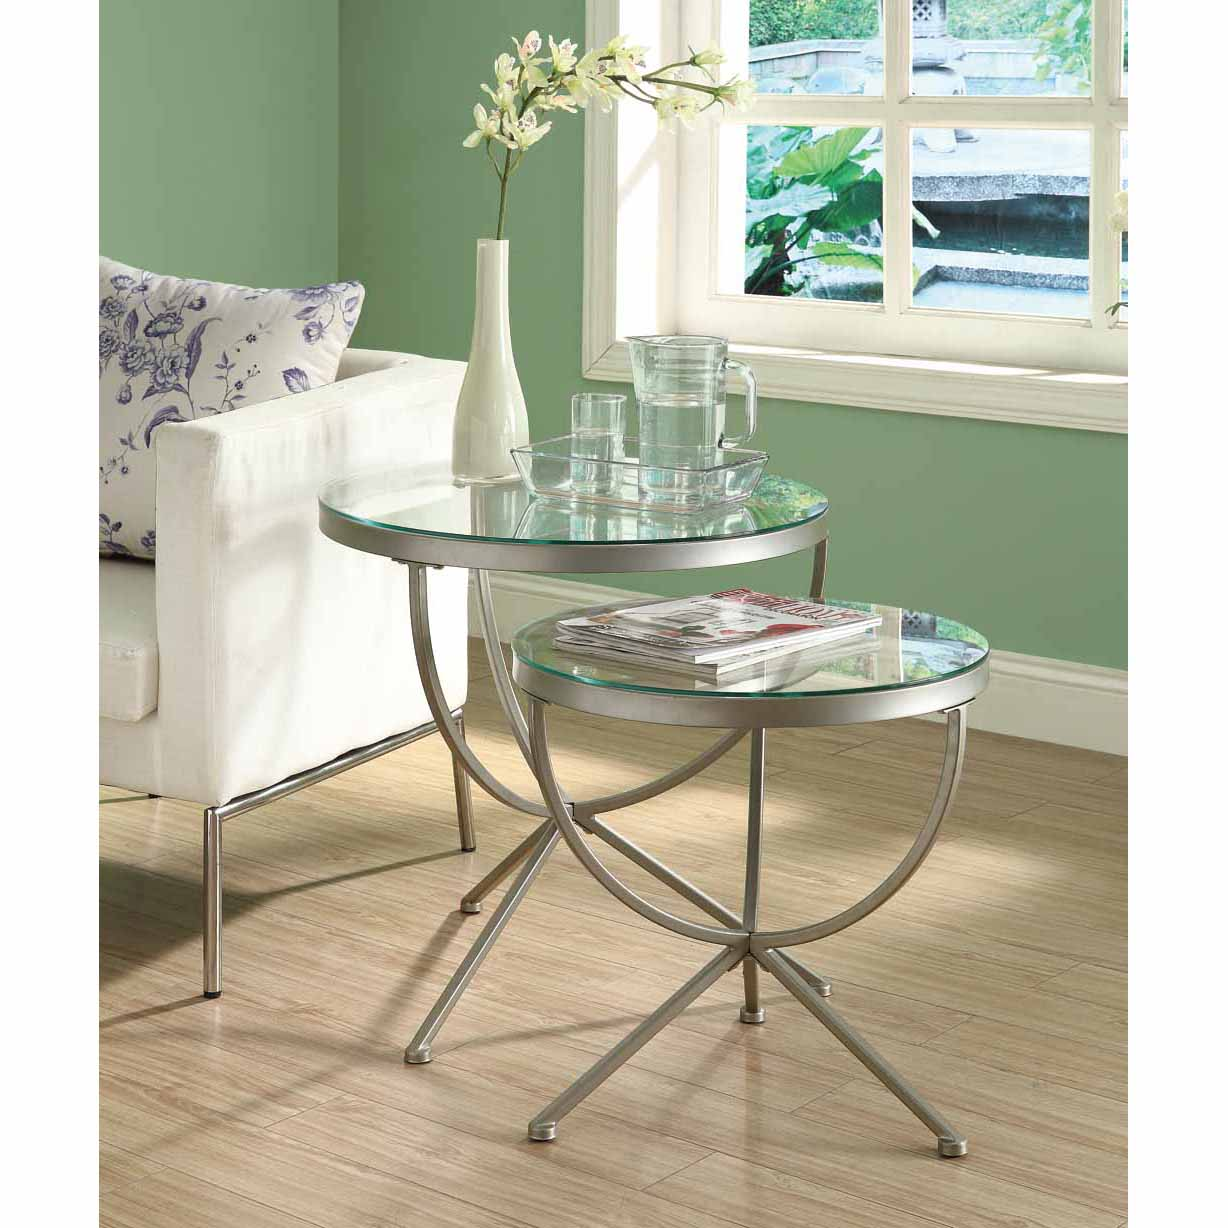 unique metal and glass end tables painting for your house large nesting gold leaf top coffee table big contemporary mini fridge thin accent with chairs underneath kirklands